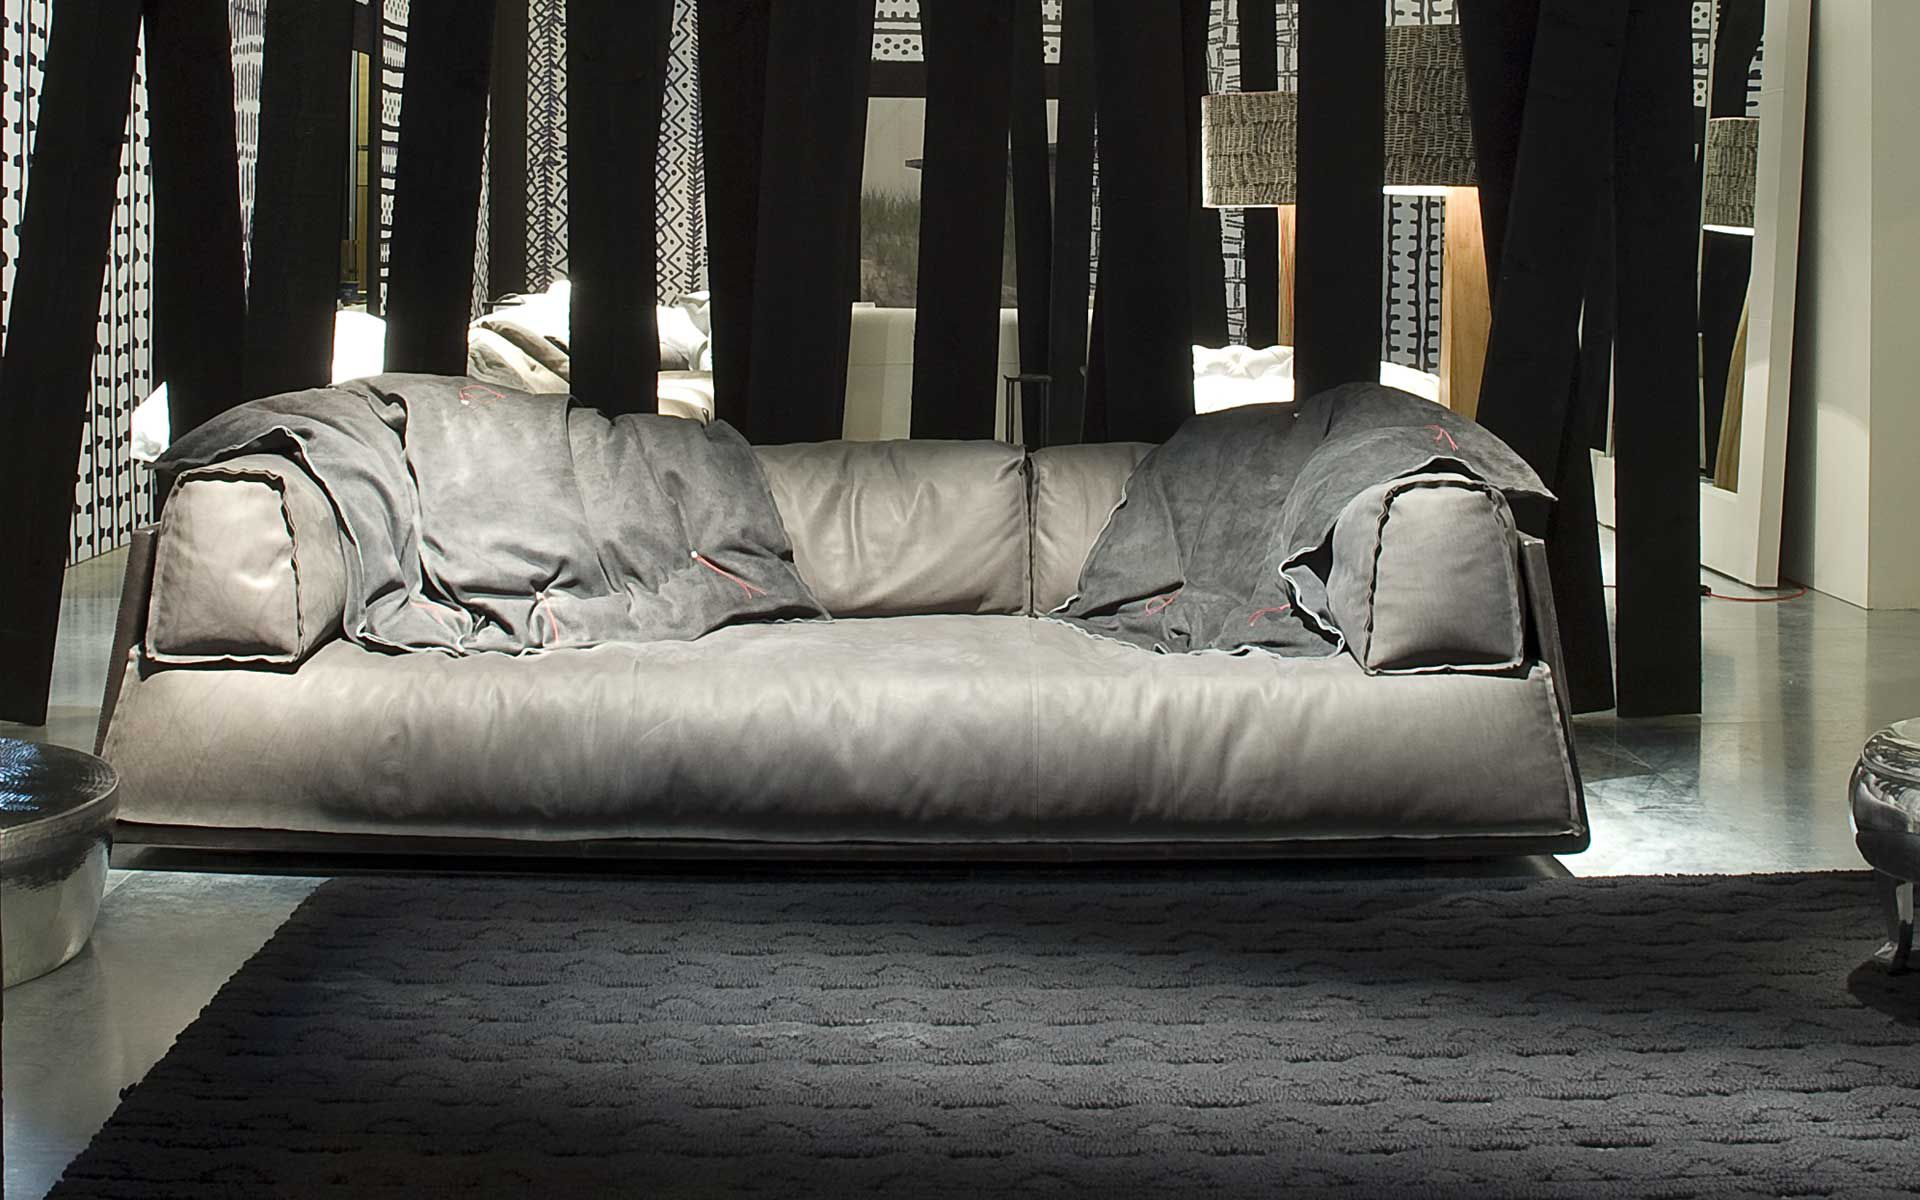 Full Size of Baxter Sofa Paola Navone Chester Moon Furniture List Made In Italy Budapest Zweisitzer Weiches Mit Led Freistil Schlaffunktion Federkern Home Affaire Big U Sofa Baxter Sofa